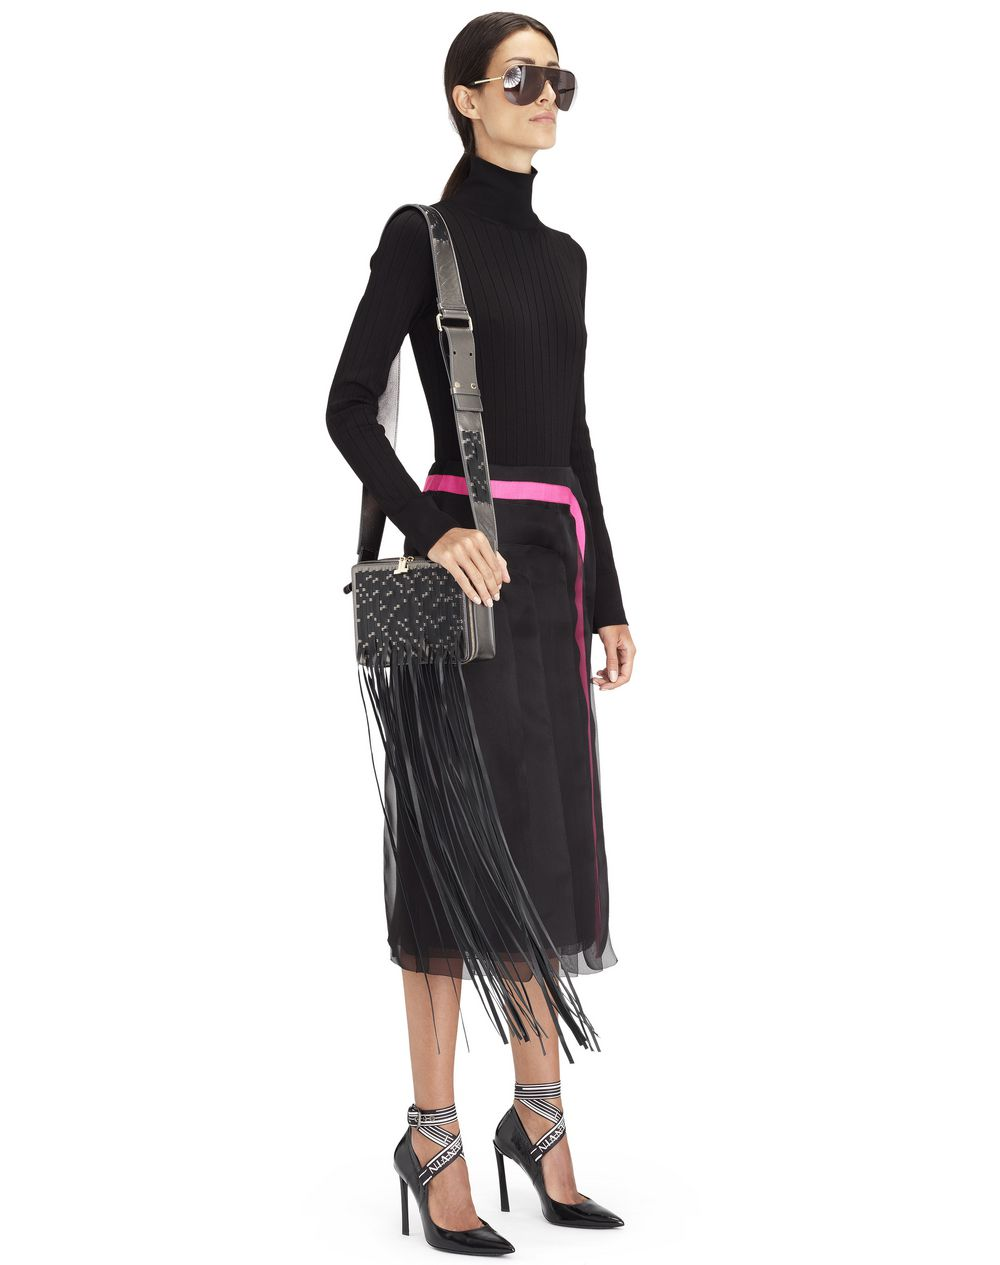 FRINGE TOFFEE BAG  - Lanvin